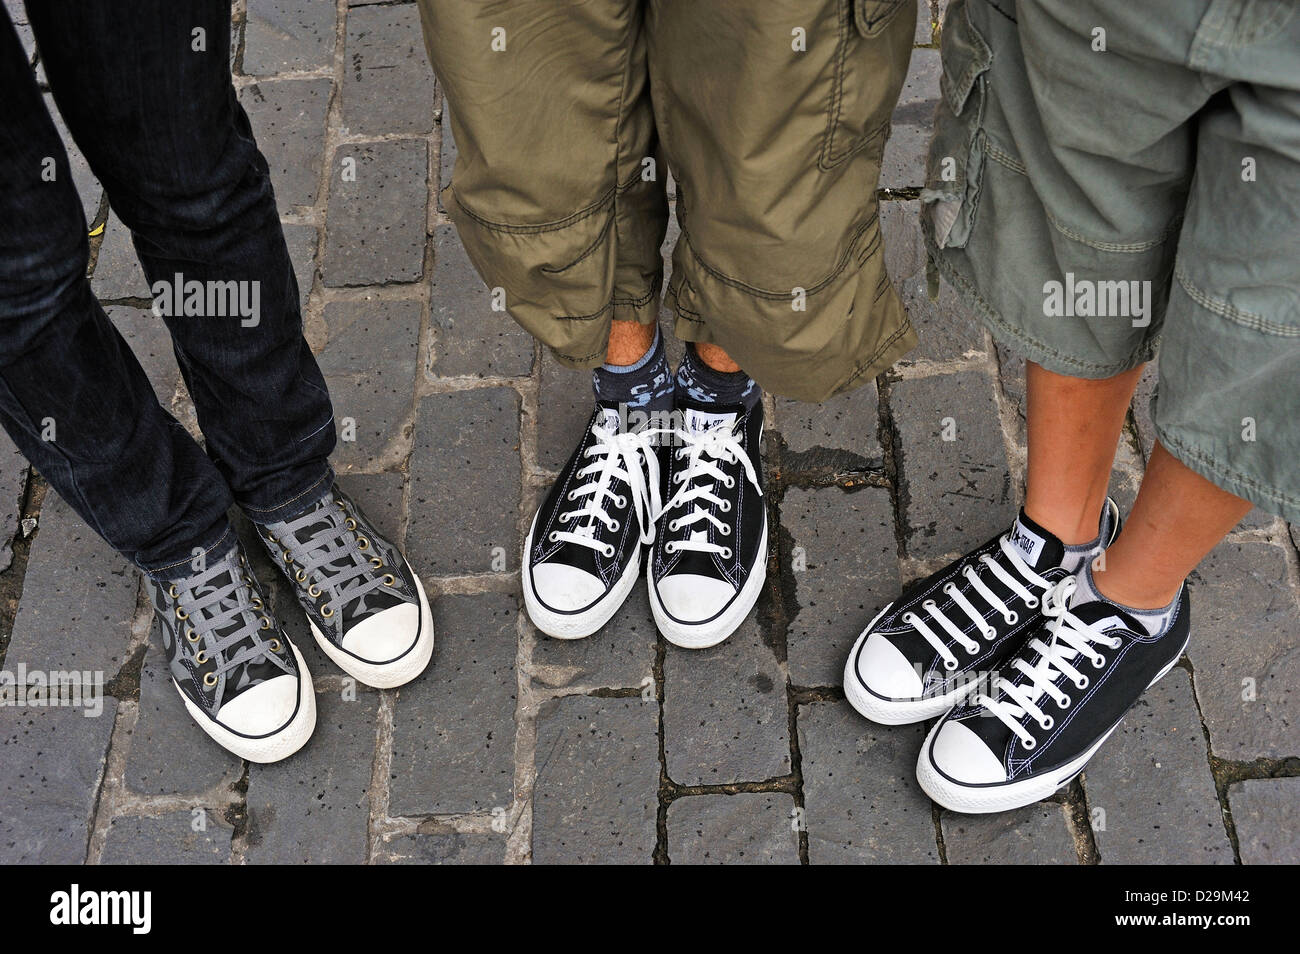 Teenagers with new Converse trainers sneakers - Stock Image